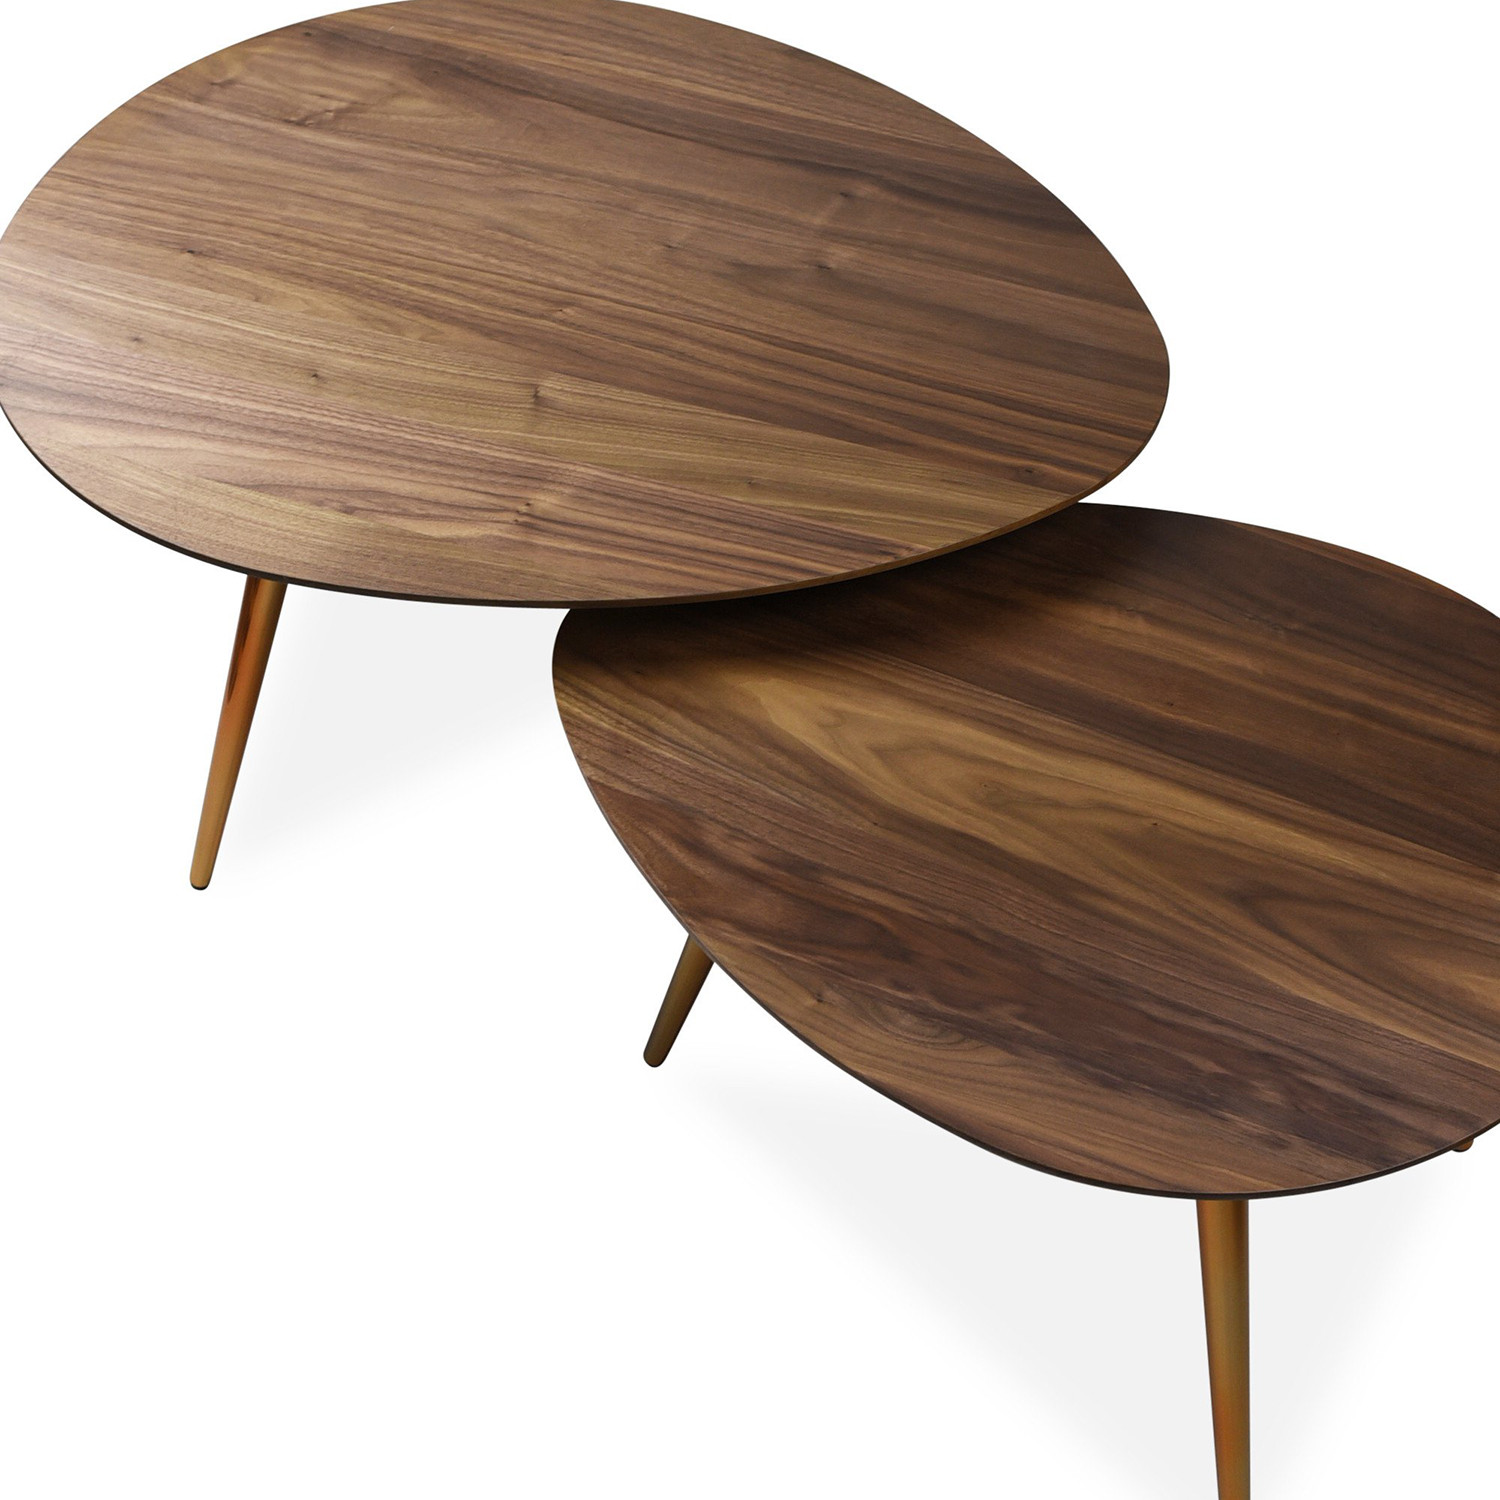 Maddox mid century modern nesting coffee table set edloe for Modern nesting coffee tables